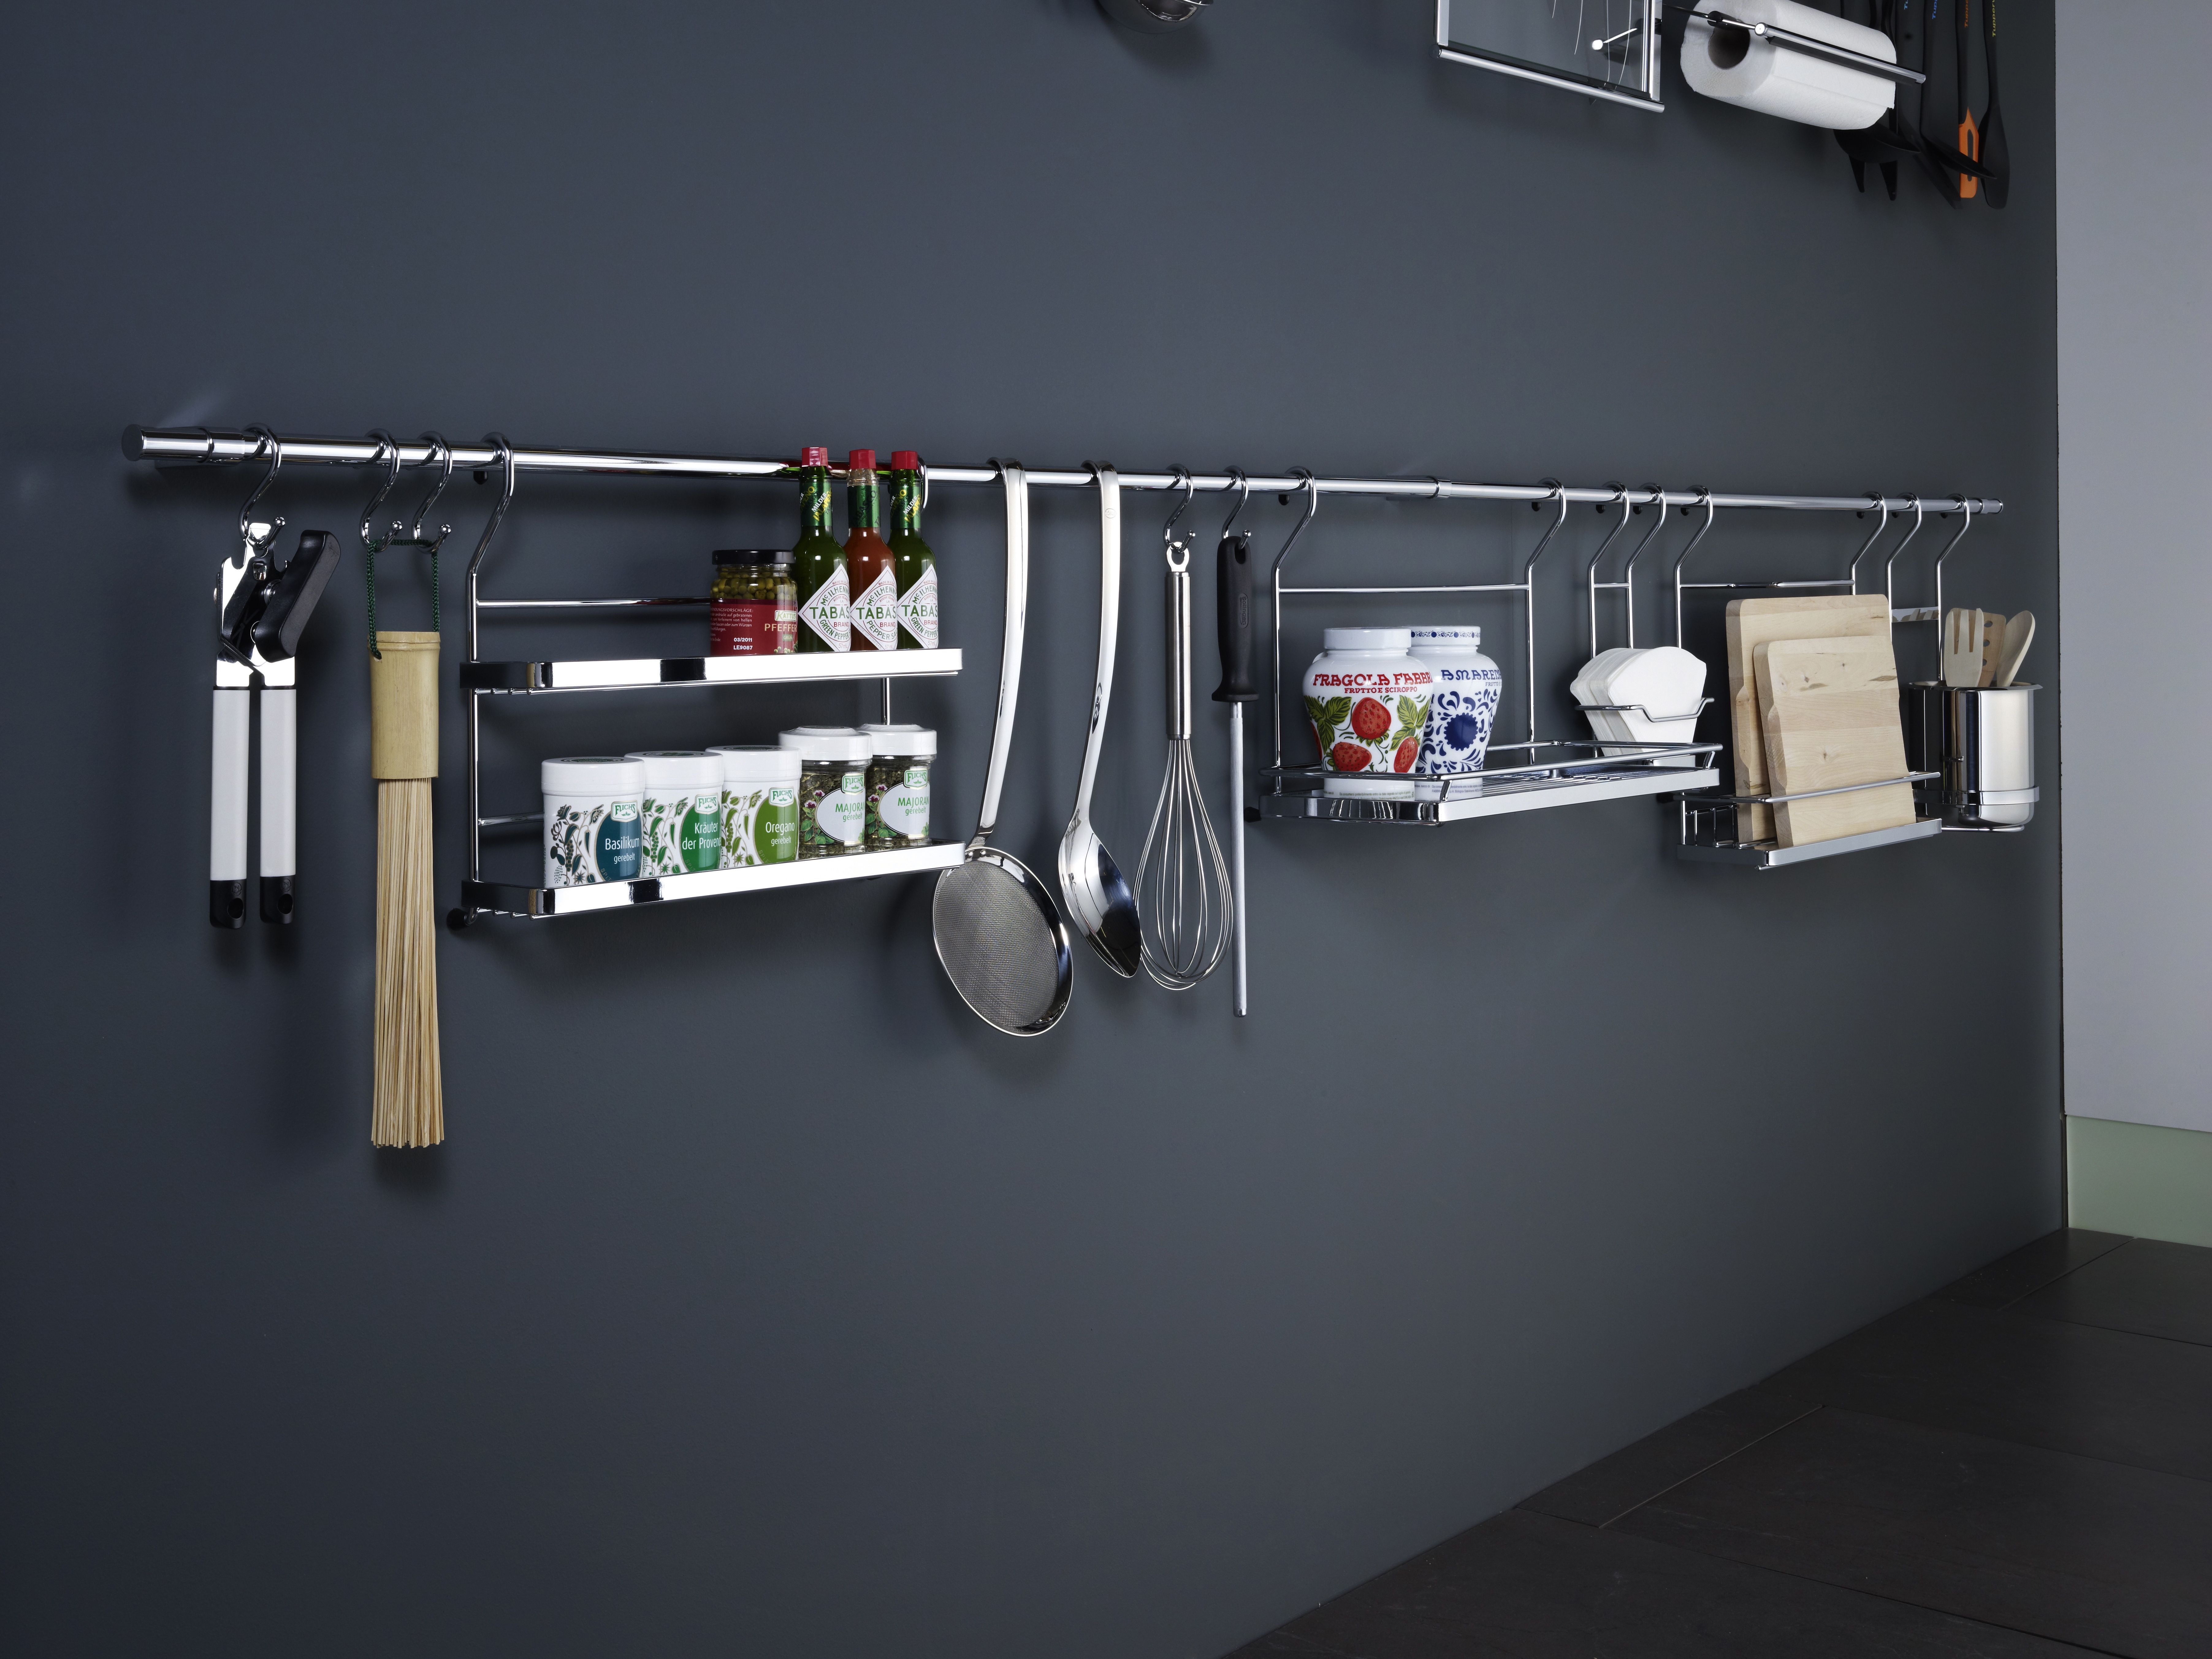 The Linero backsplash system can be built to just about any size, and can have any variety of attachments on it.